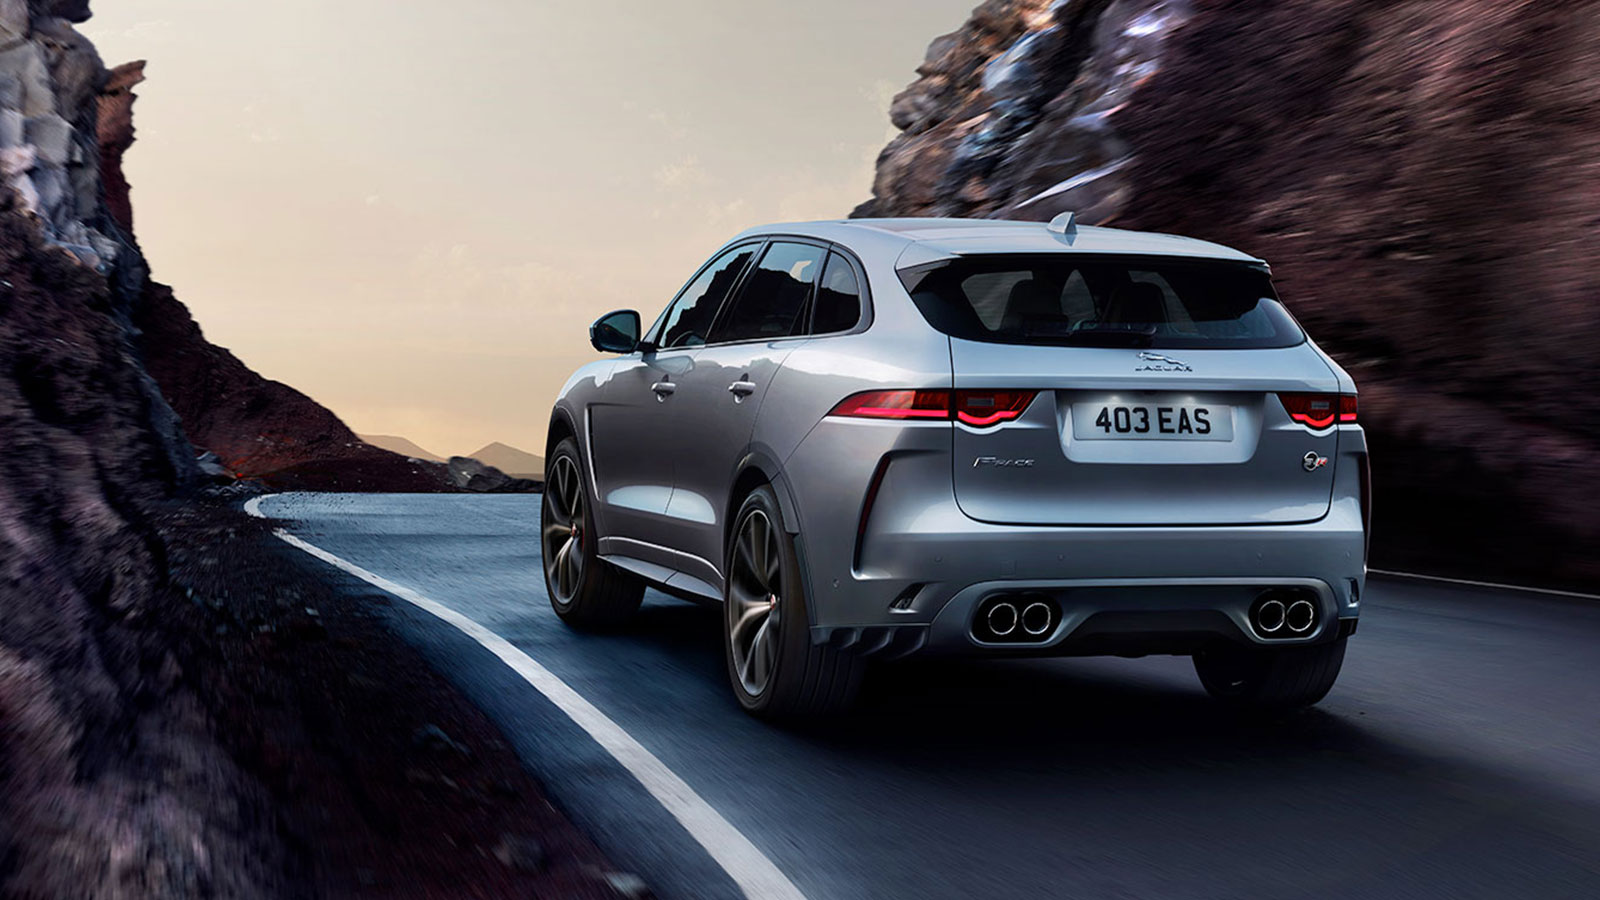 Rear View of Silver Jaguar F-PACE.